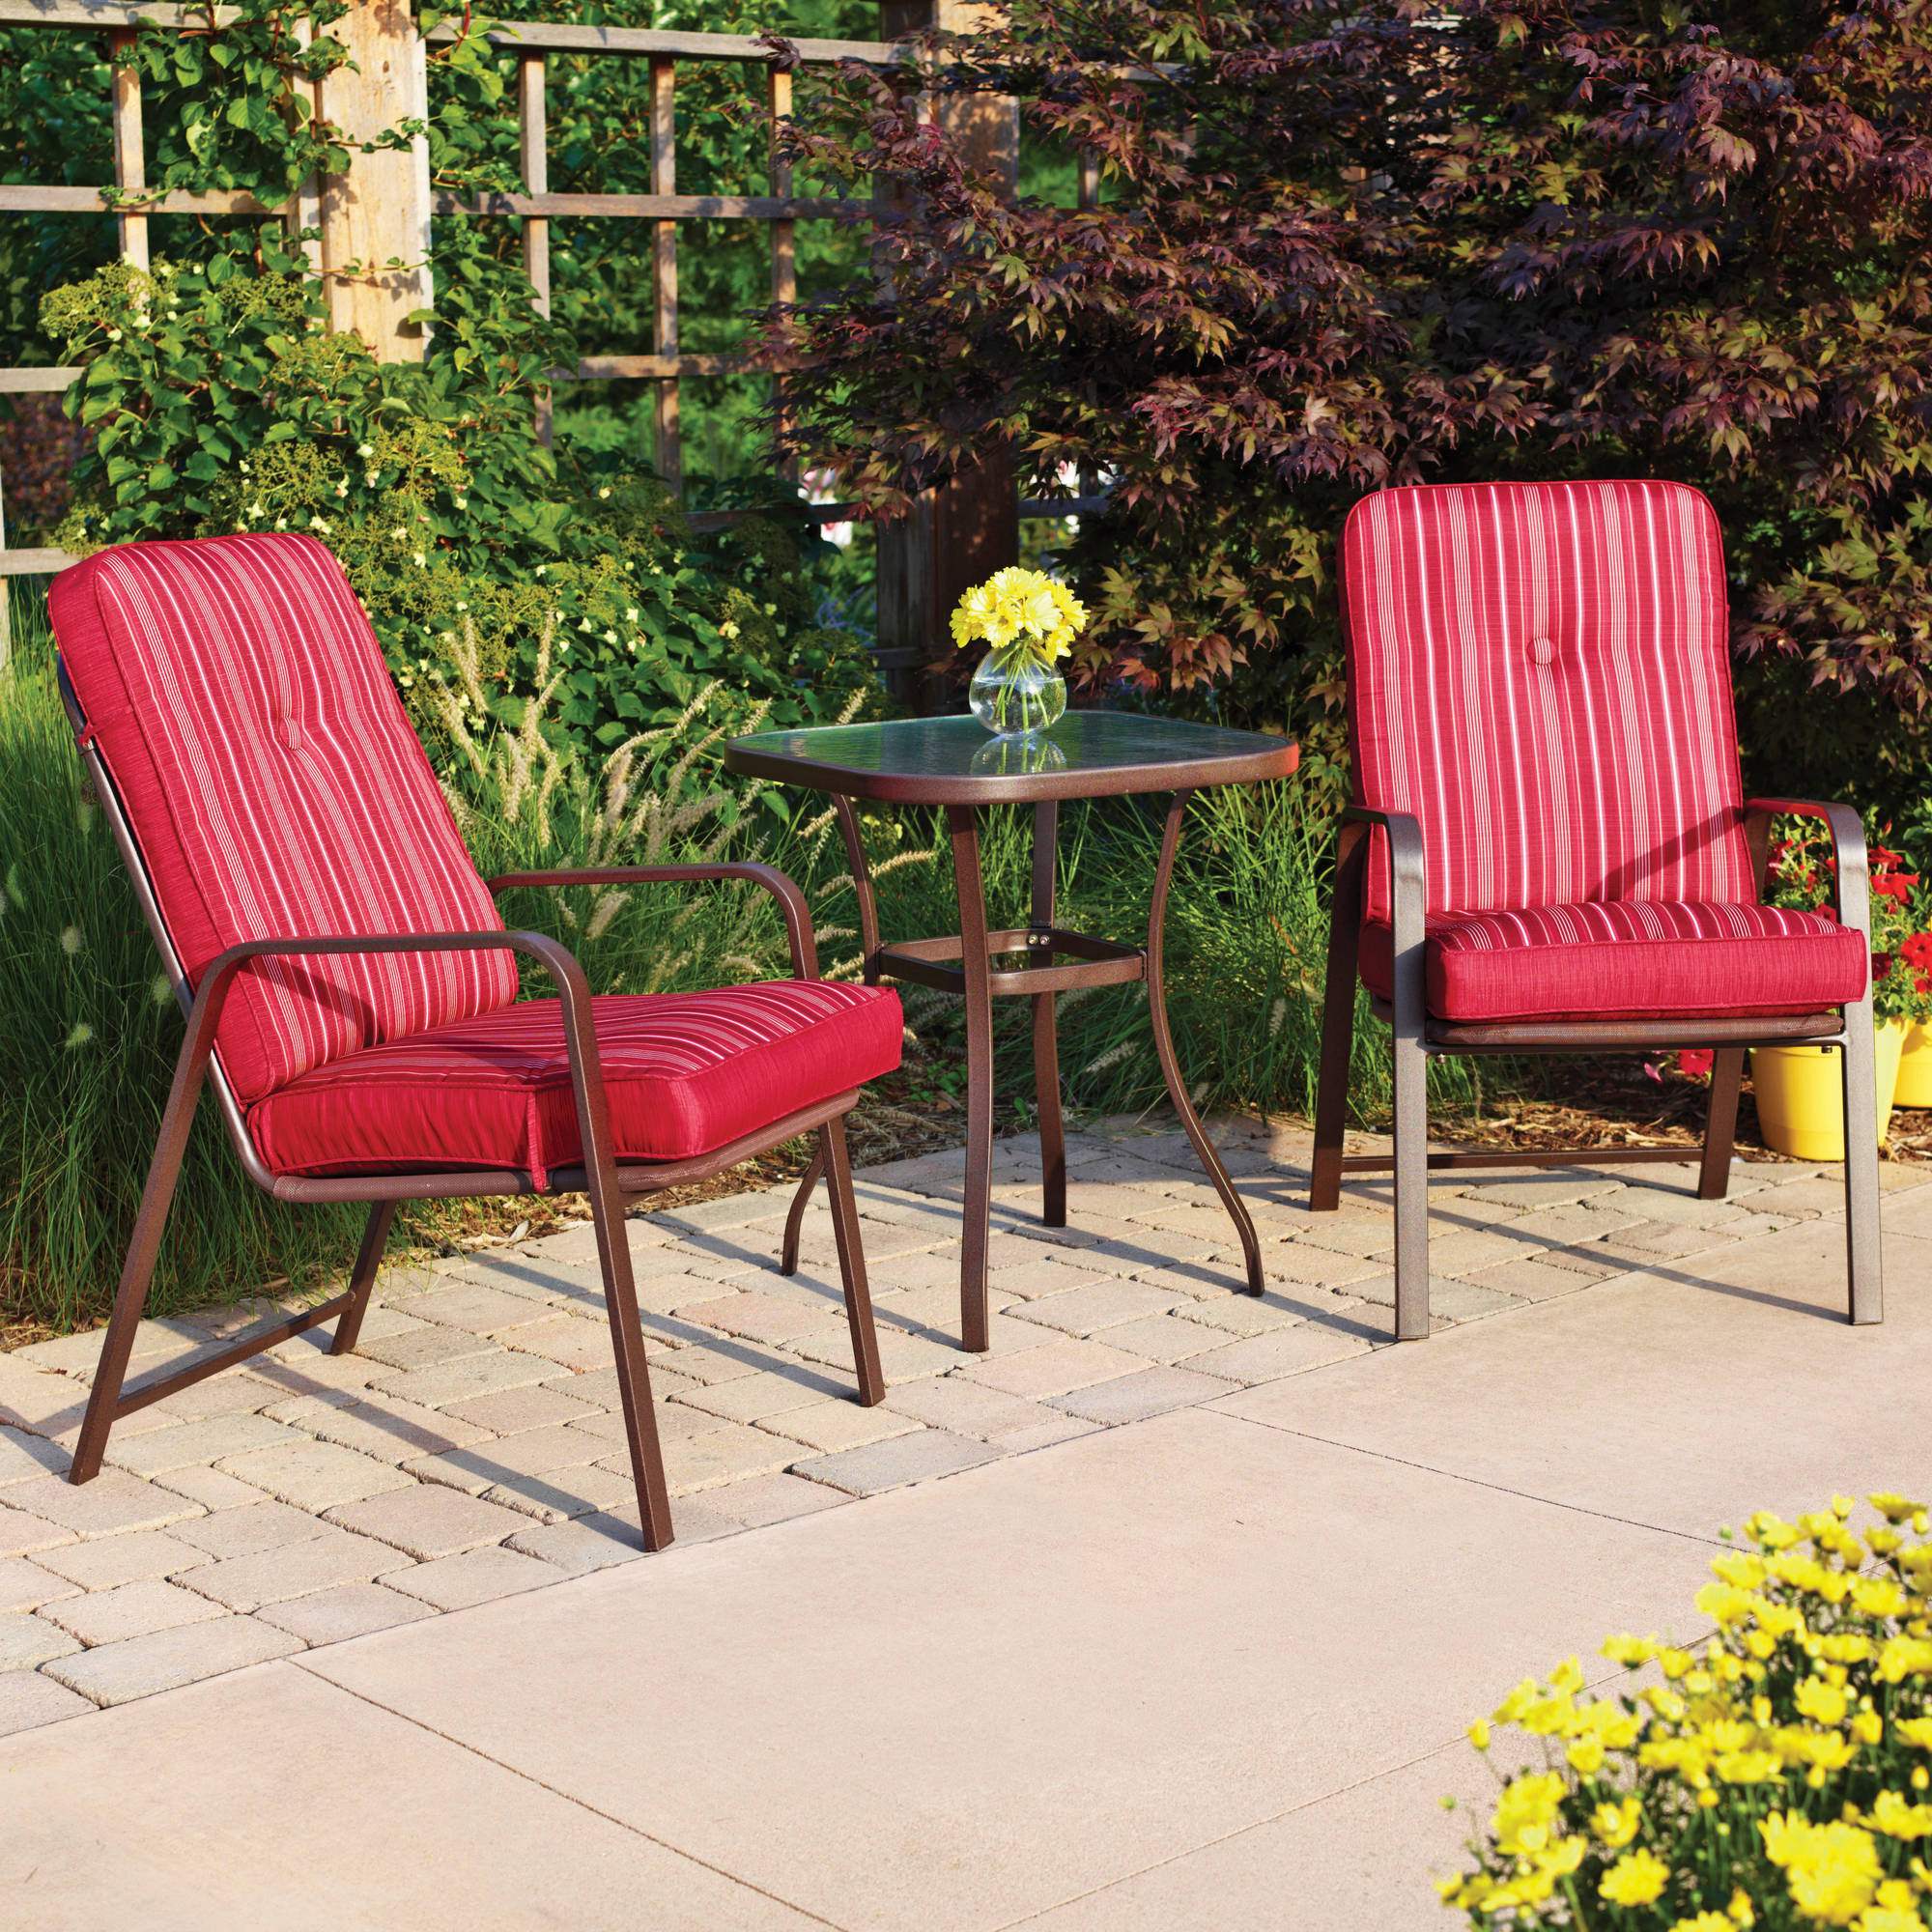 Mainstays Lawson Ridge 3-Piece Outdoor Bistro Set, Seats 2